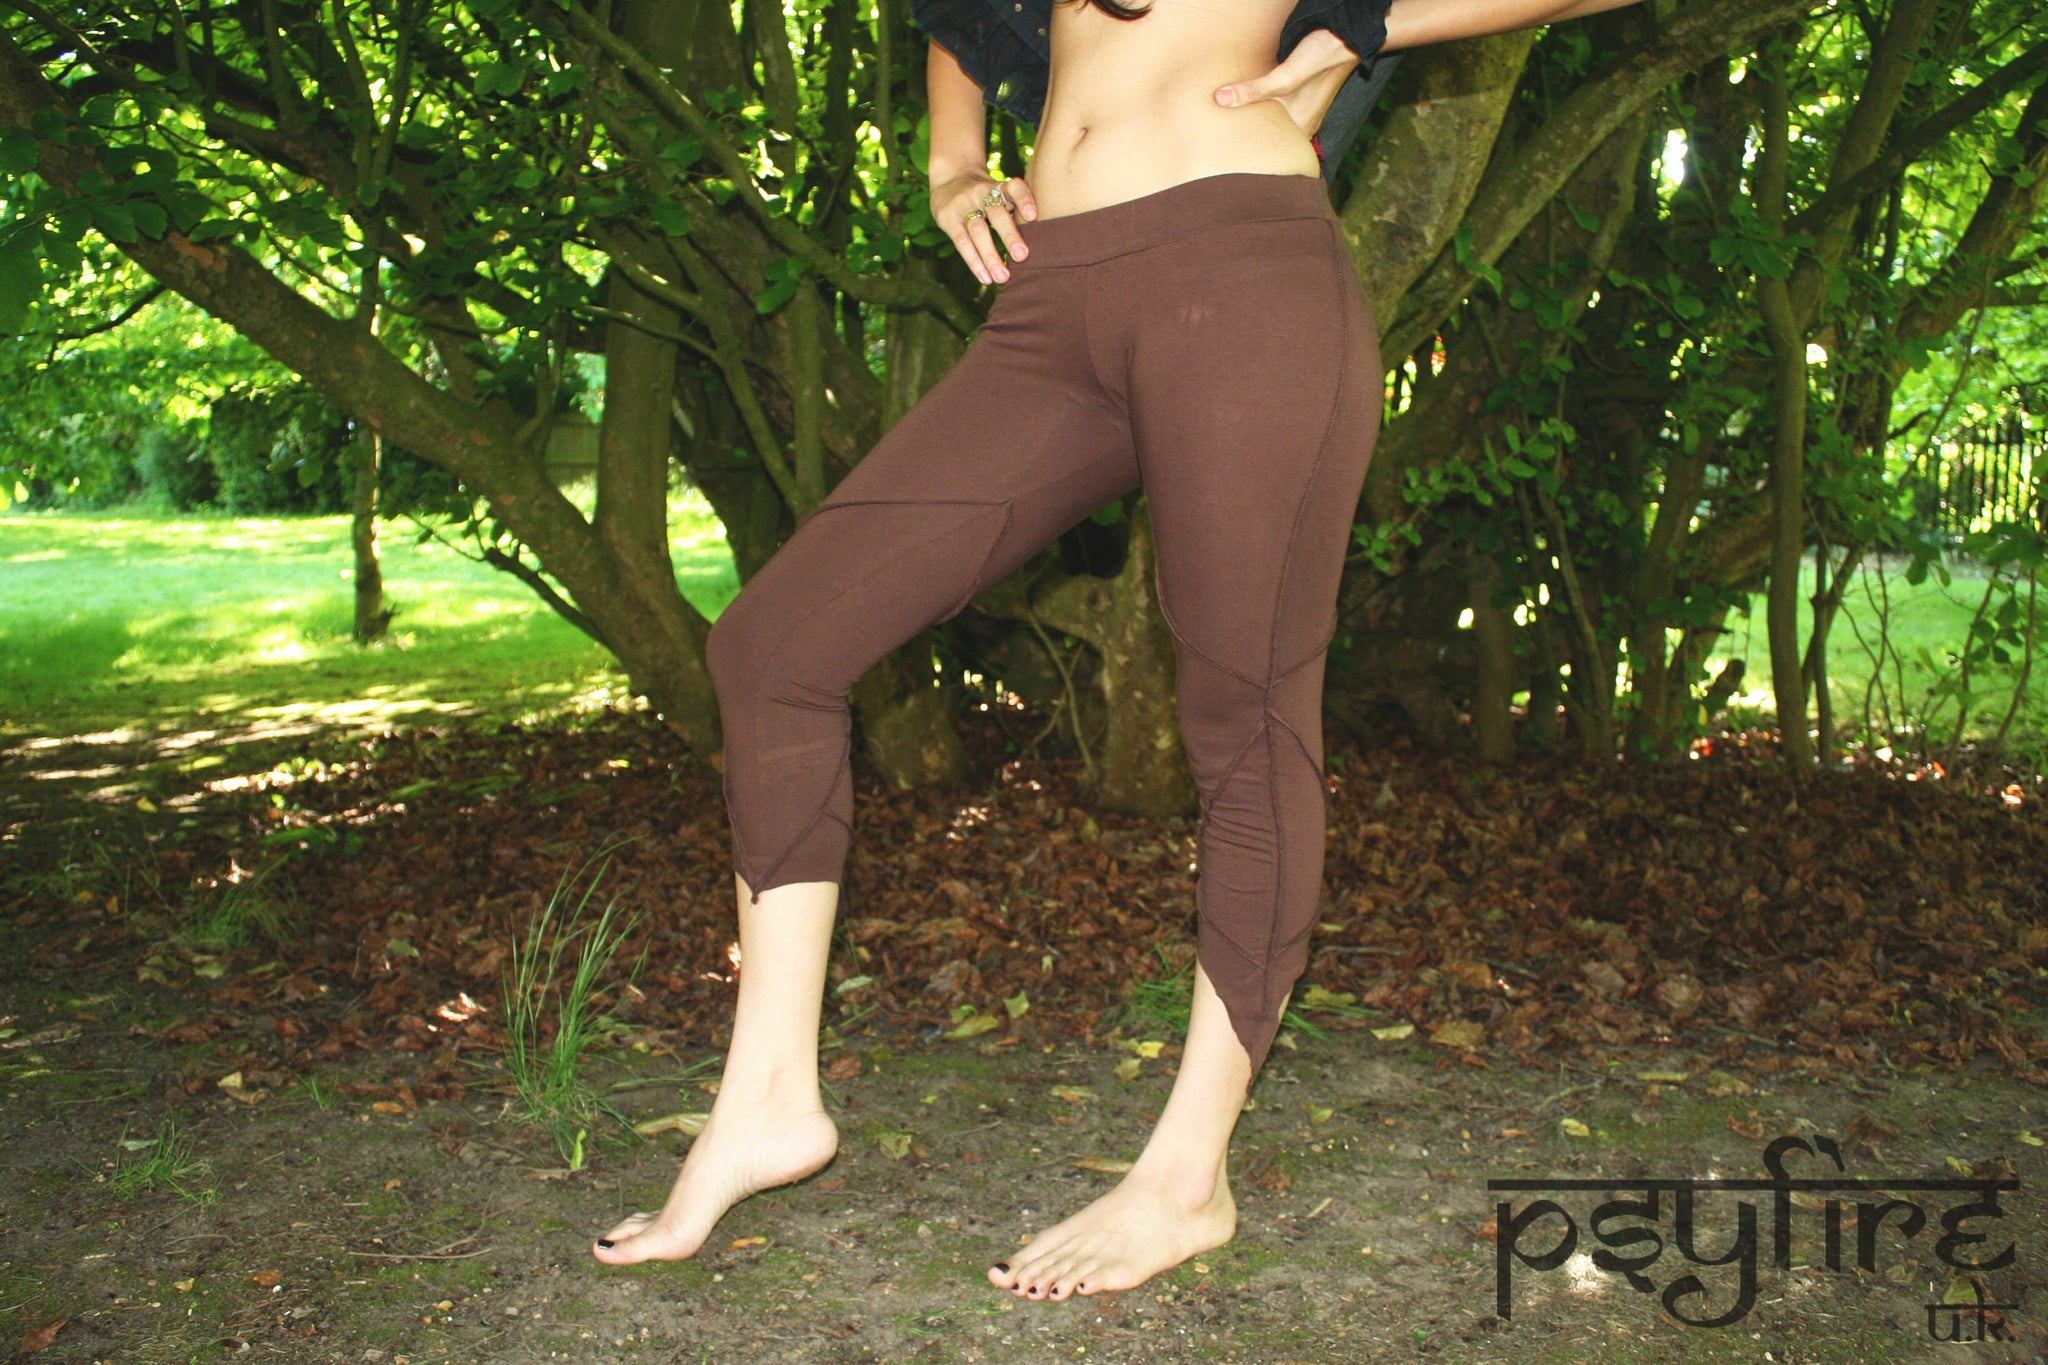 BROWN PIXIE Leggings - Hippie Yoga Pants, Festival Leggings, Psytrance Leggings, Yoga Pants, Flow Leggings, Festival Clothing, Pixie, Psy